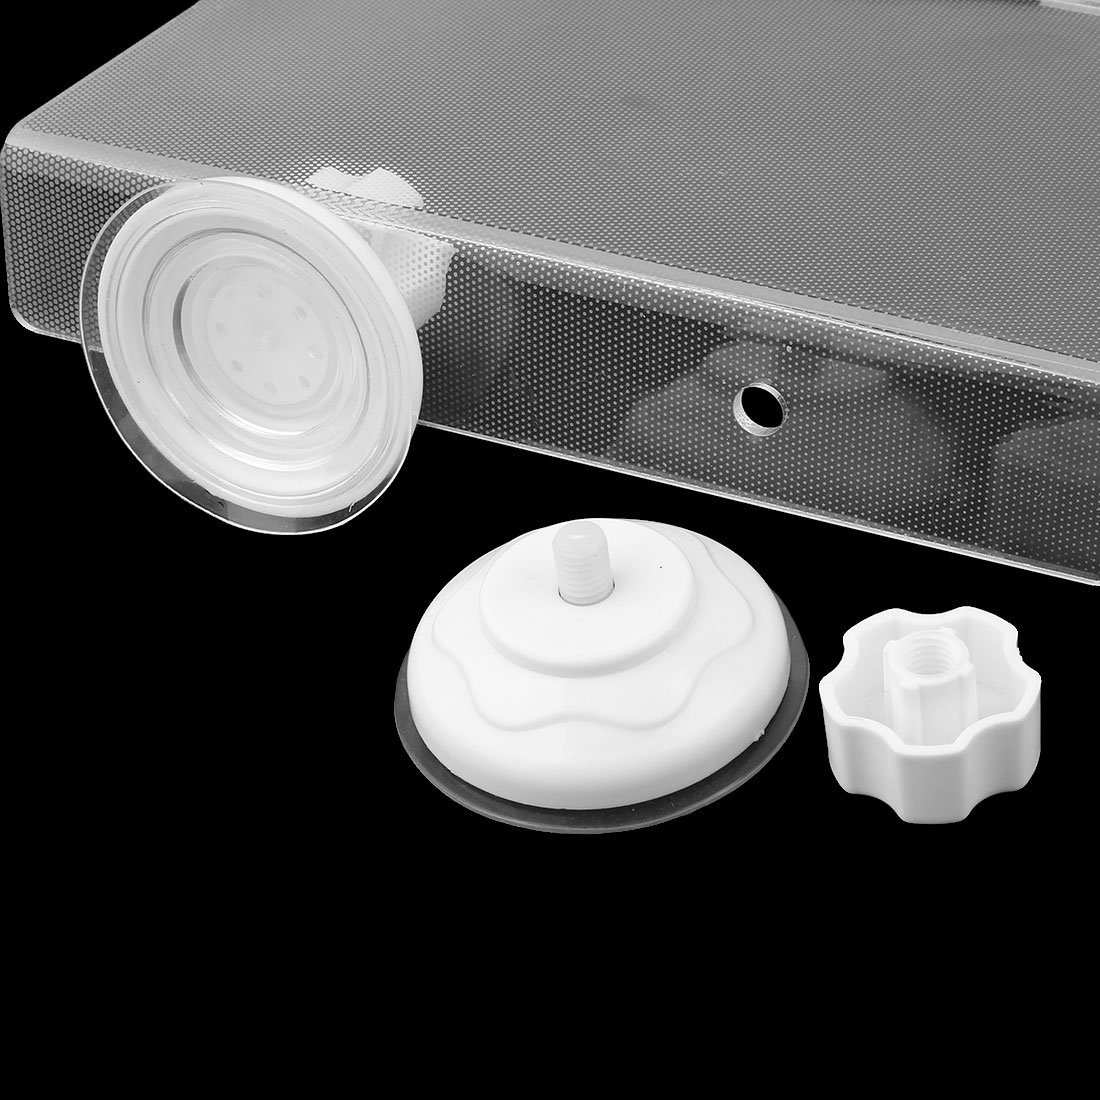 DealMux Suction Up Animal Reptile Acrylic Floating Island Basking Platform Pier Set Clear by DealMux (Image #2)